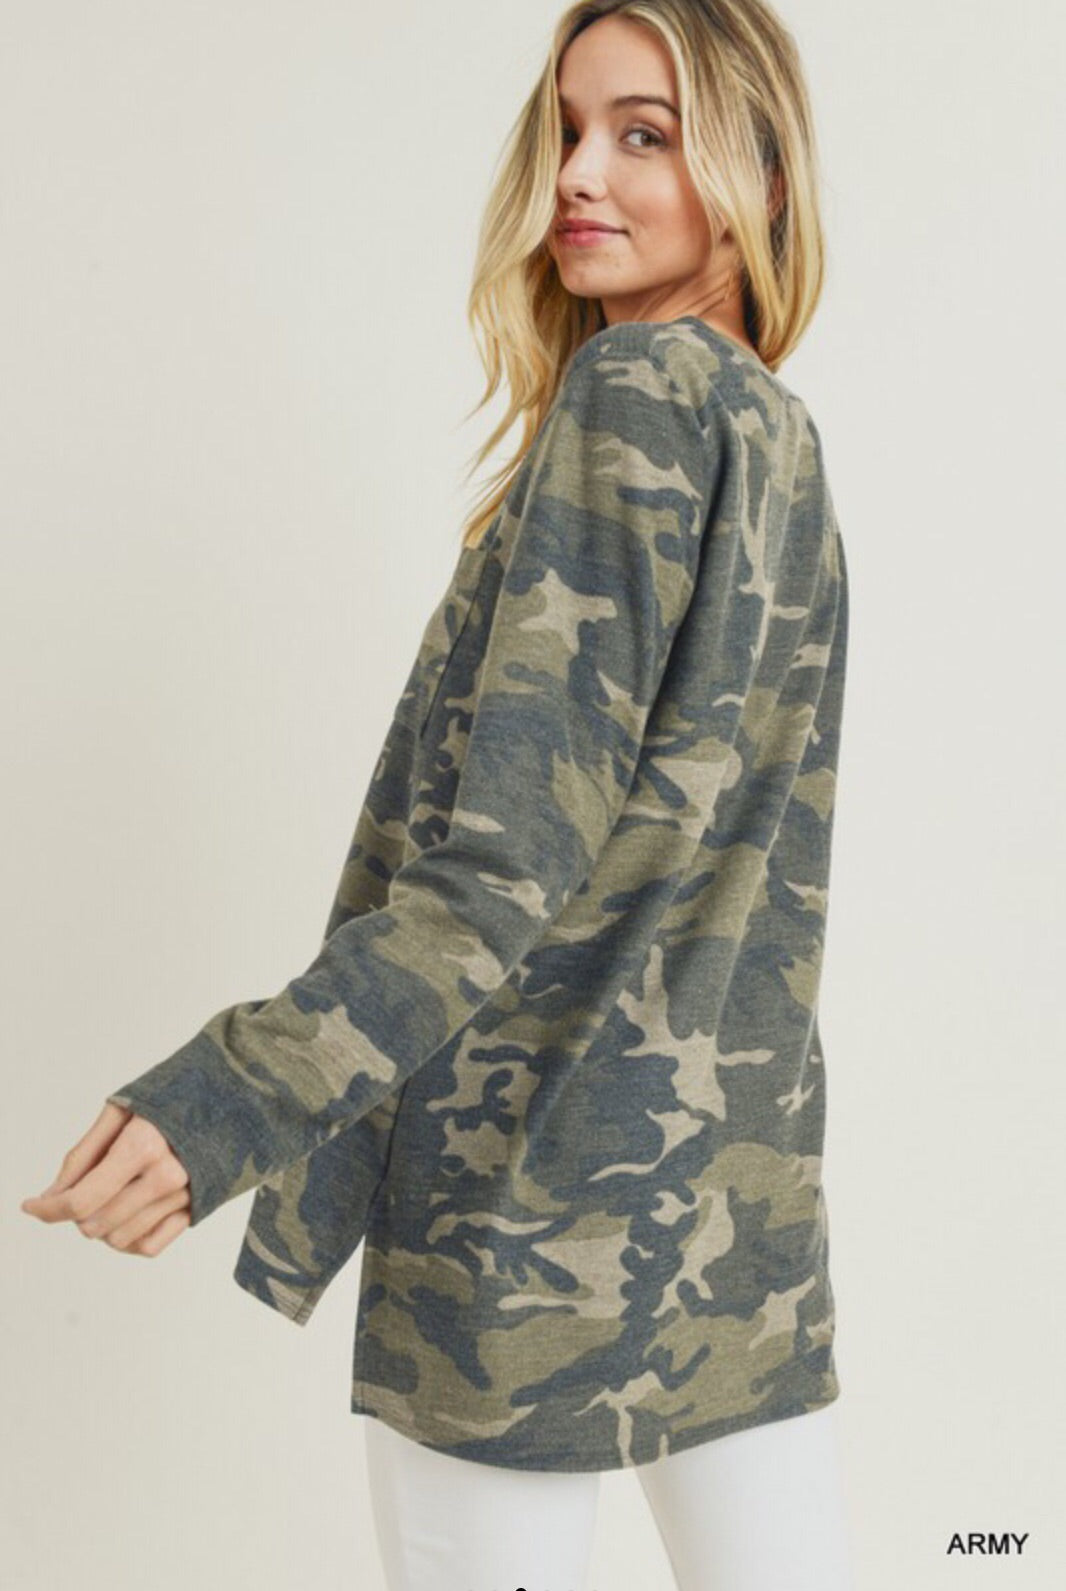 Forest Camoflauge Top